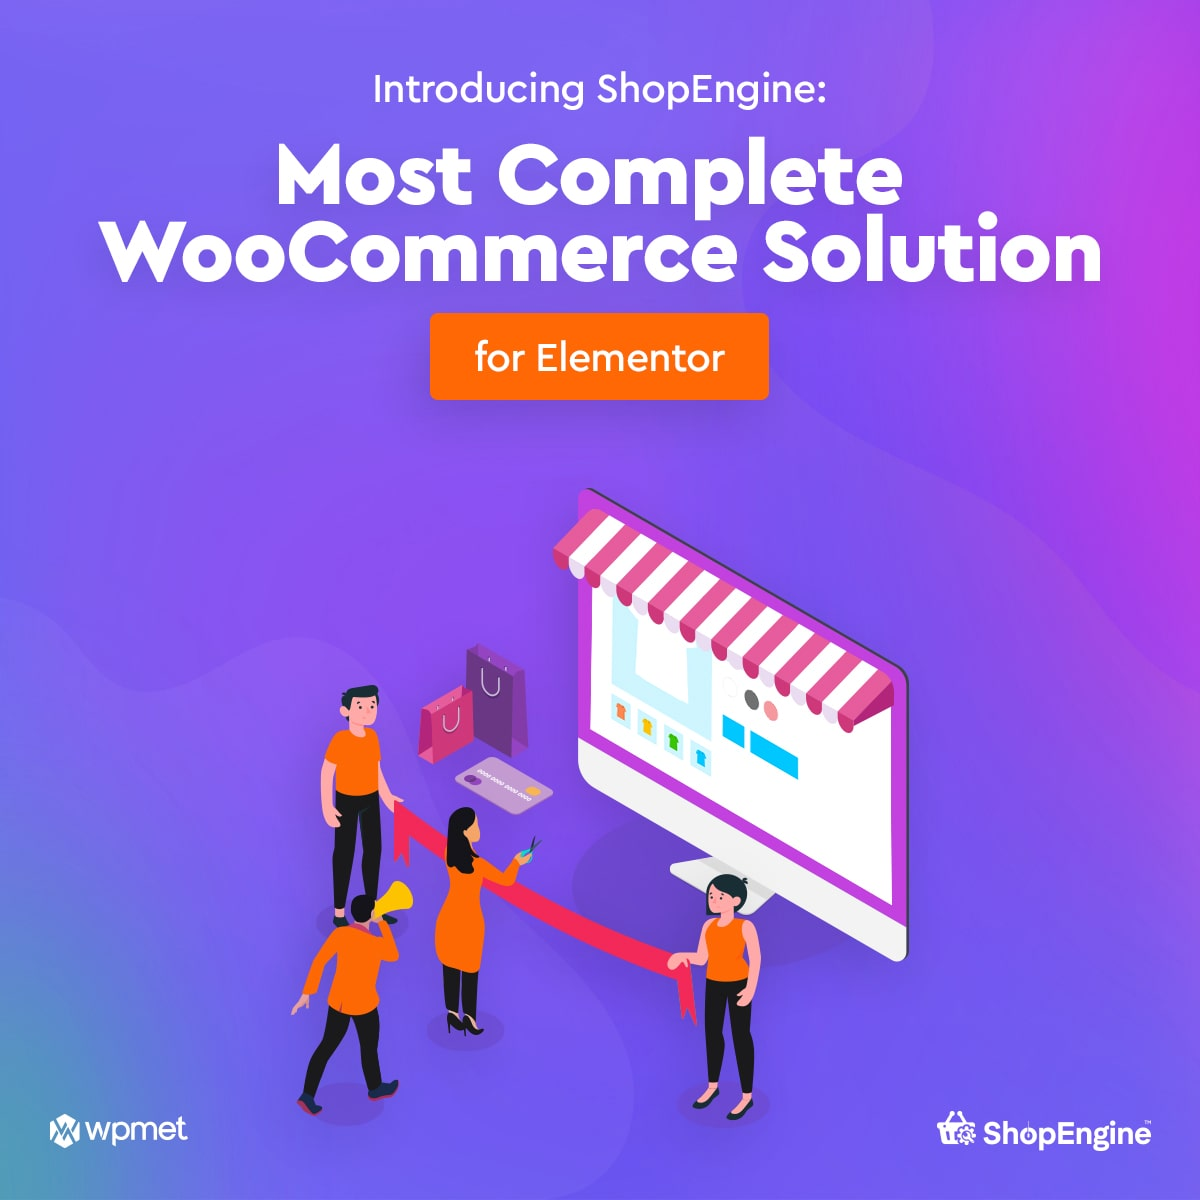 ShopEngine : Most Complete WooCommerce Solution for Elementor is available for download now